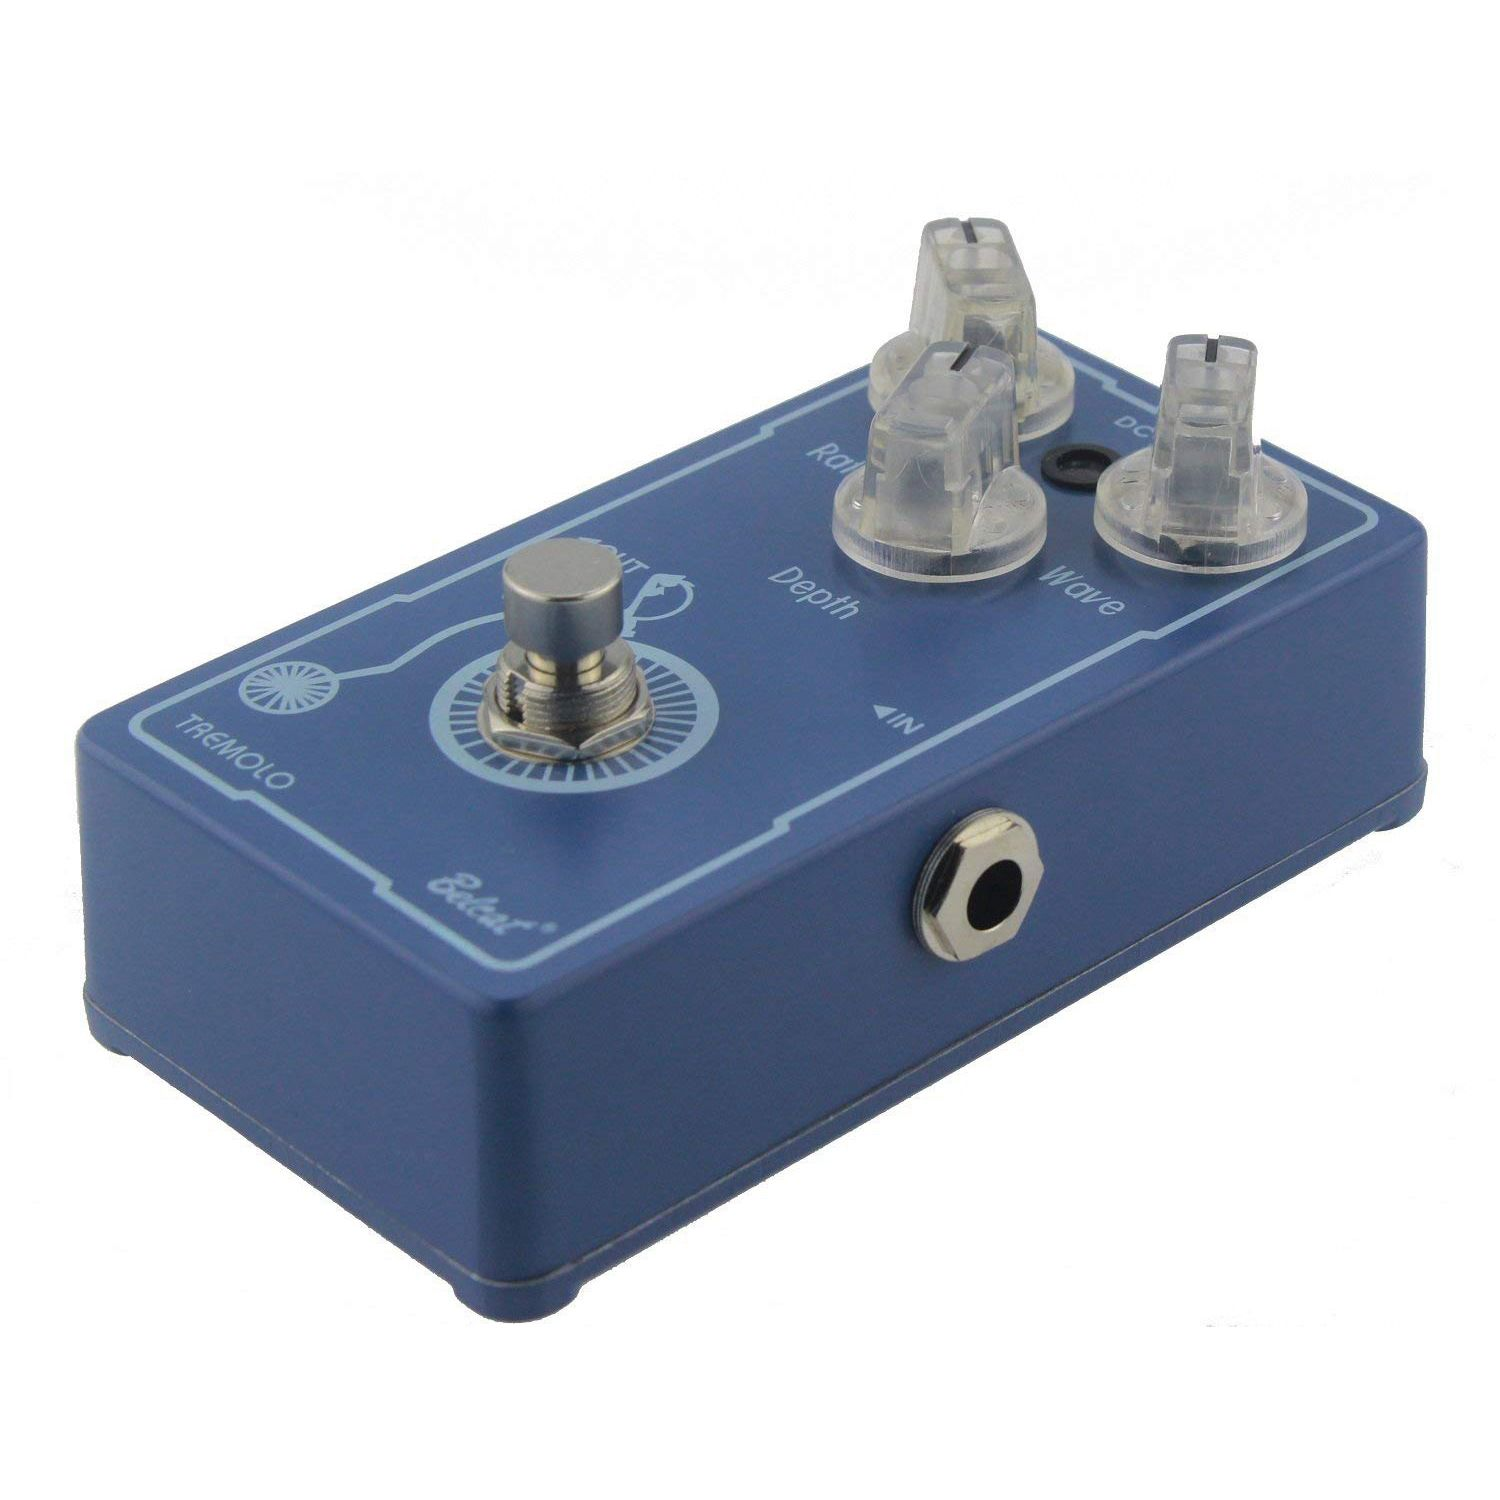 Belcat Tremolo Pedal TRM-607 Classic Analog Guitar Effects Pedal With True Bypass